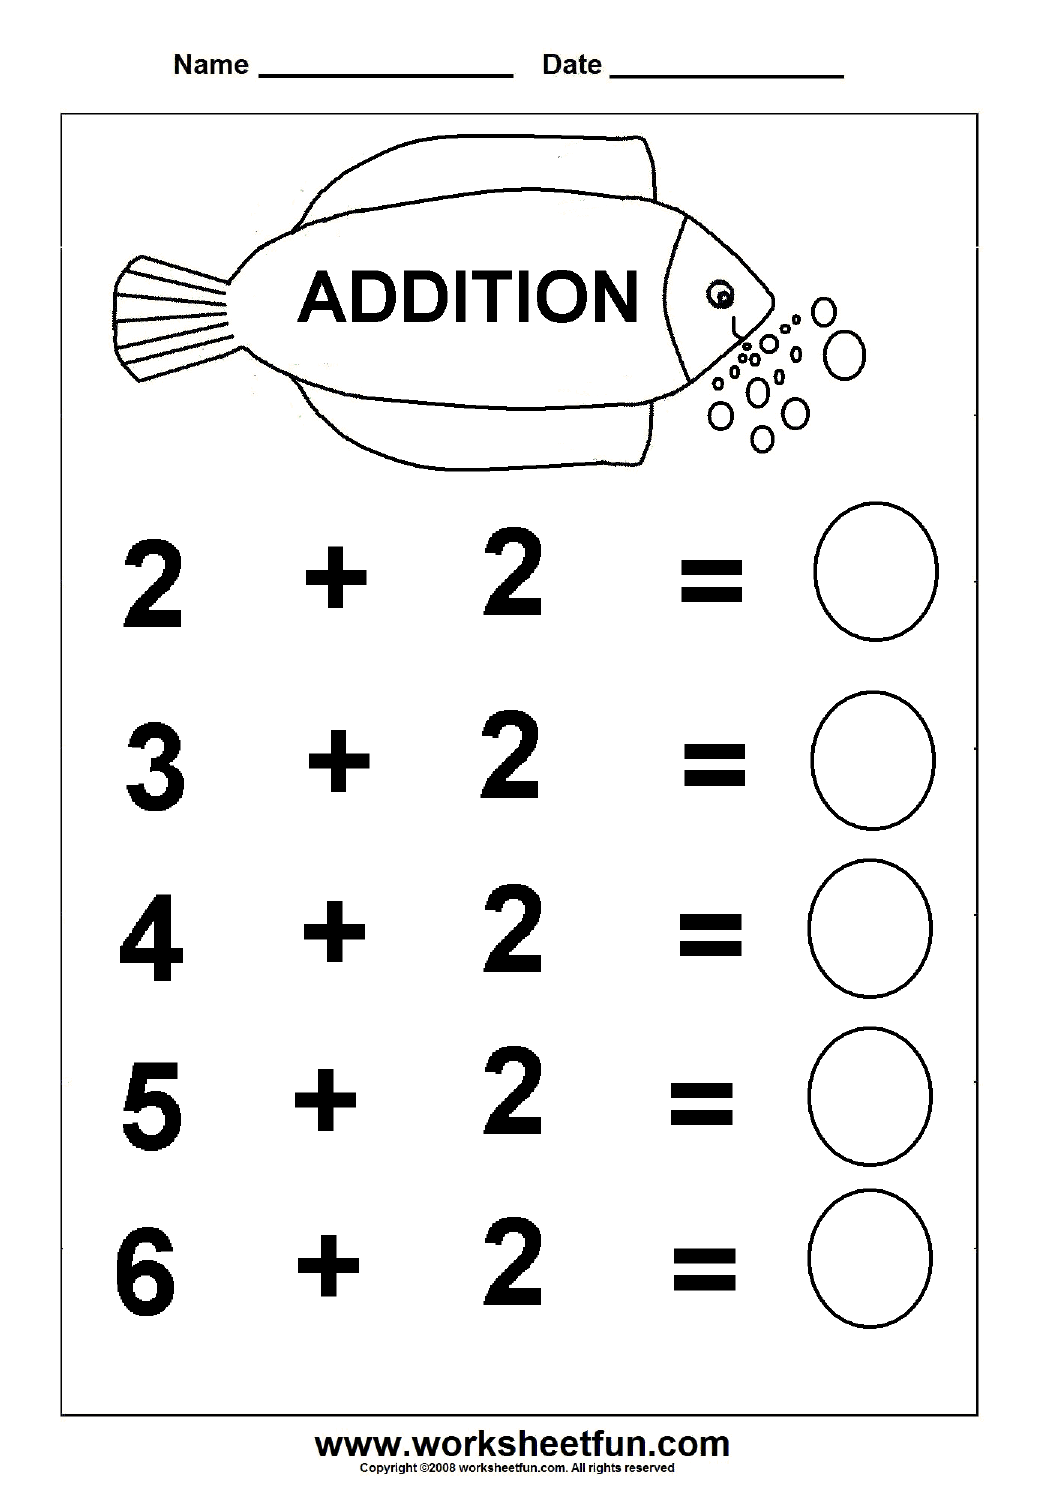 worksheet Math Worksheets For Kindergarten Addition 78 best images about free printables on pinterest kids stationery themes and spelling games